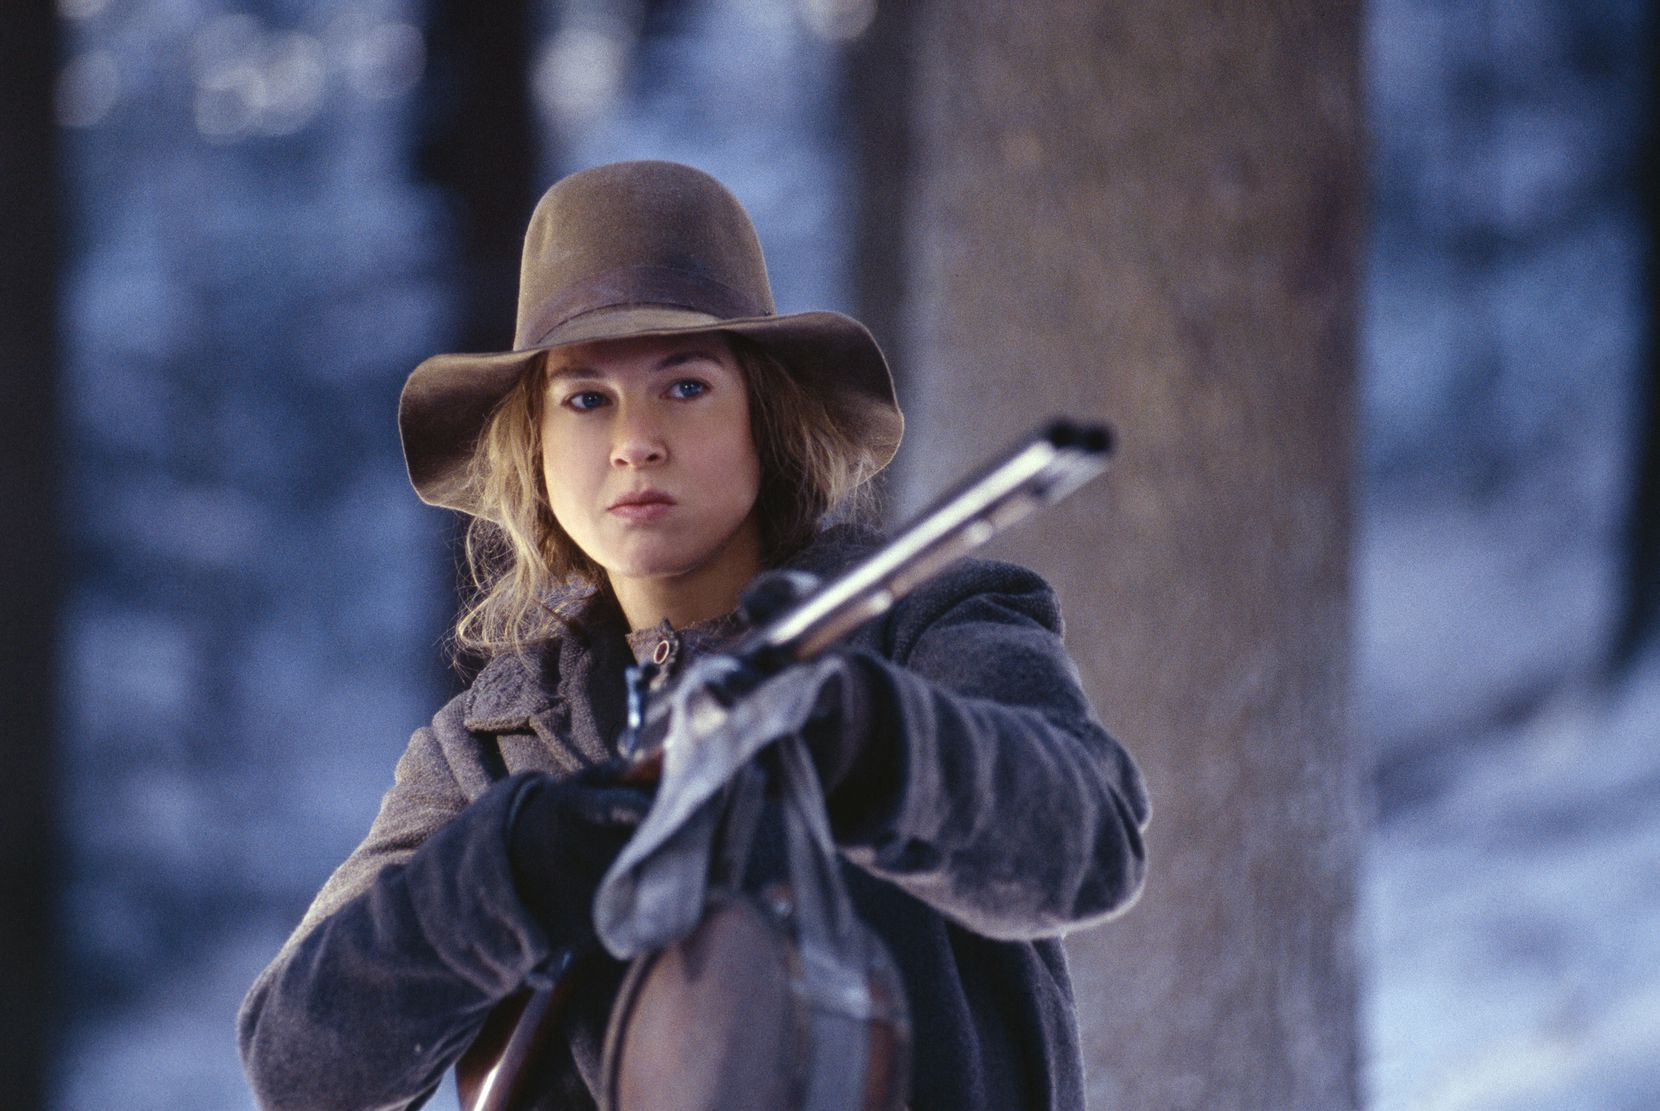 Renée Zellweger in Cold Mountain, for which she won the Oscar as Best Supporting Actress in 2004.